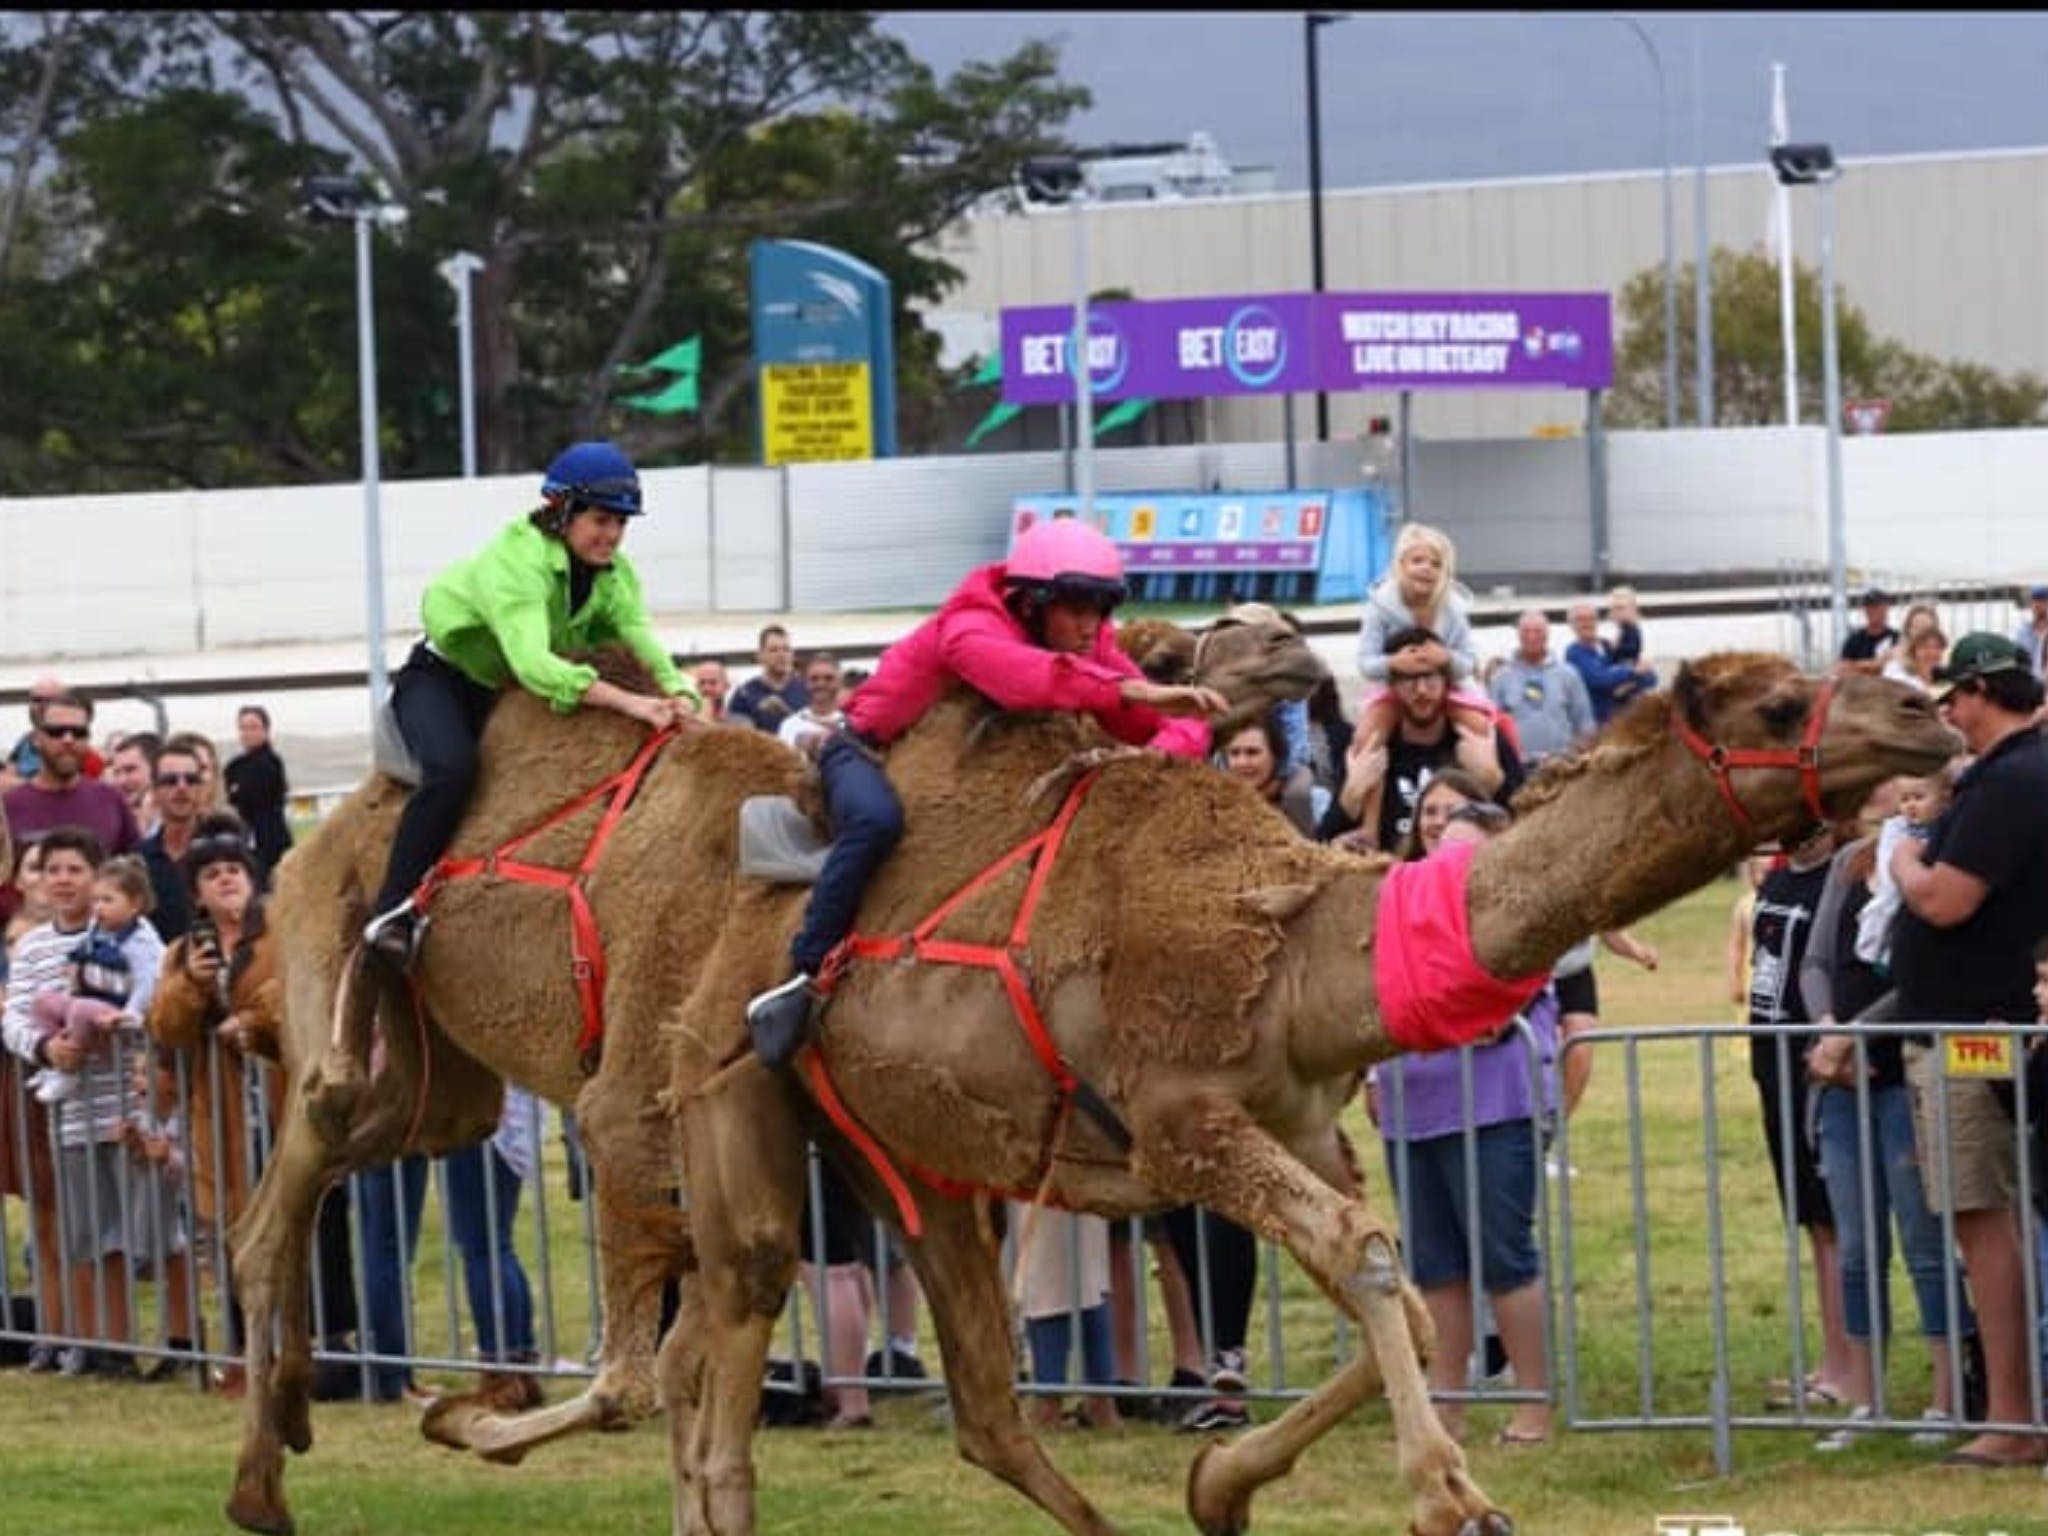 Camel Races at Gosford Showgrounds - Yarra Valley Accommodation